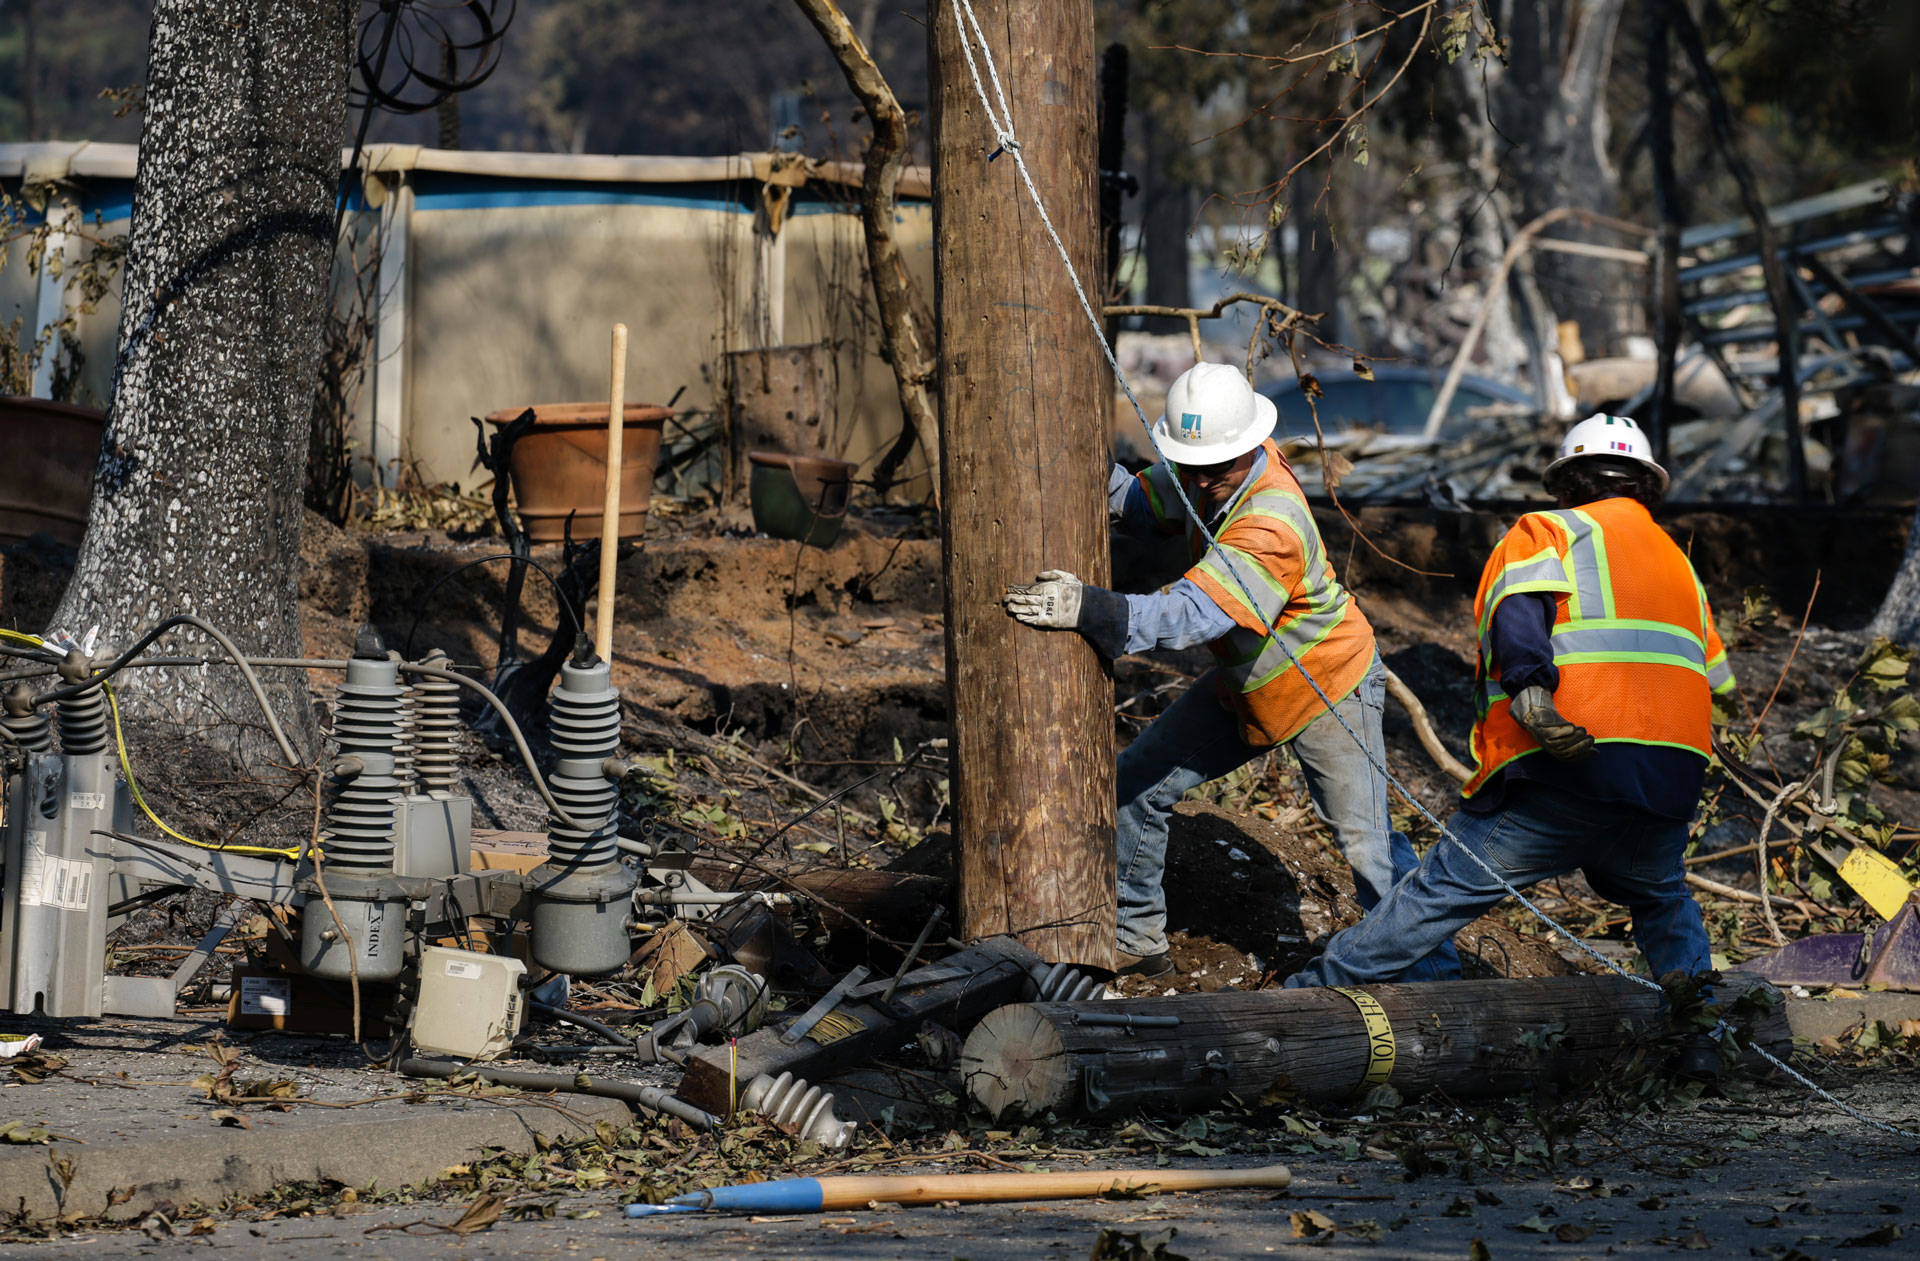 PG&E workers repair power lines in Santa Rosa's devastated Coffey Park neighborhood following the Tubbs Fire in October 2017. Elijah Nouvelage/Getty Images